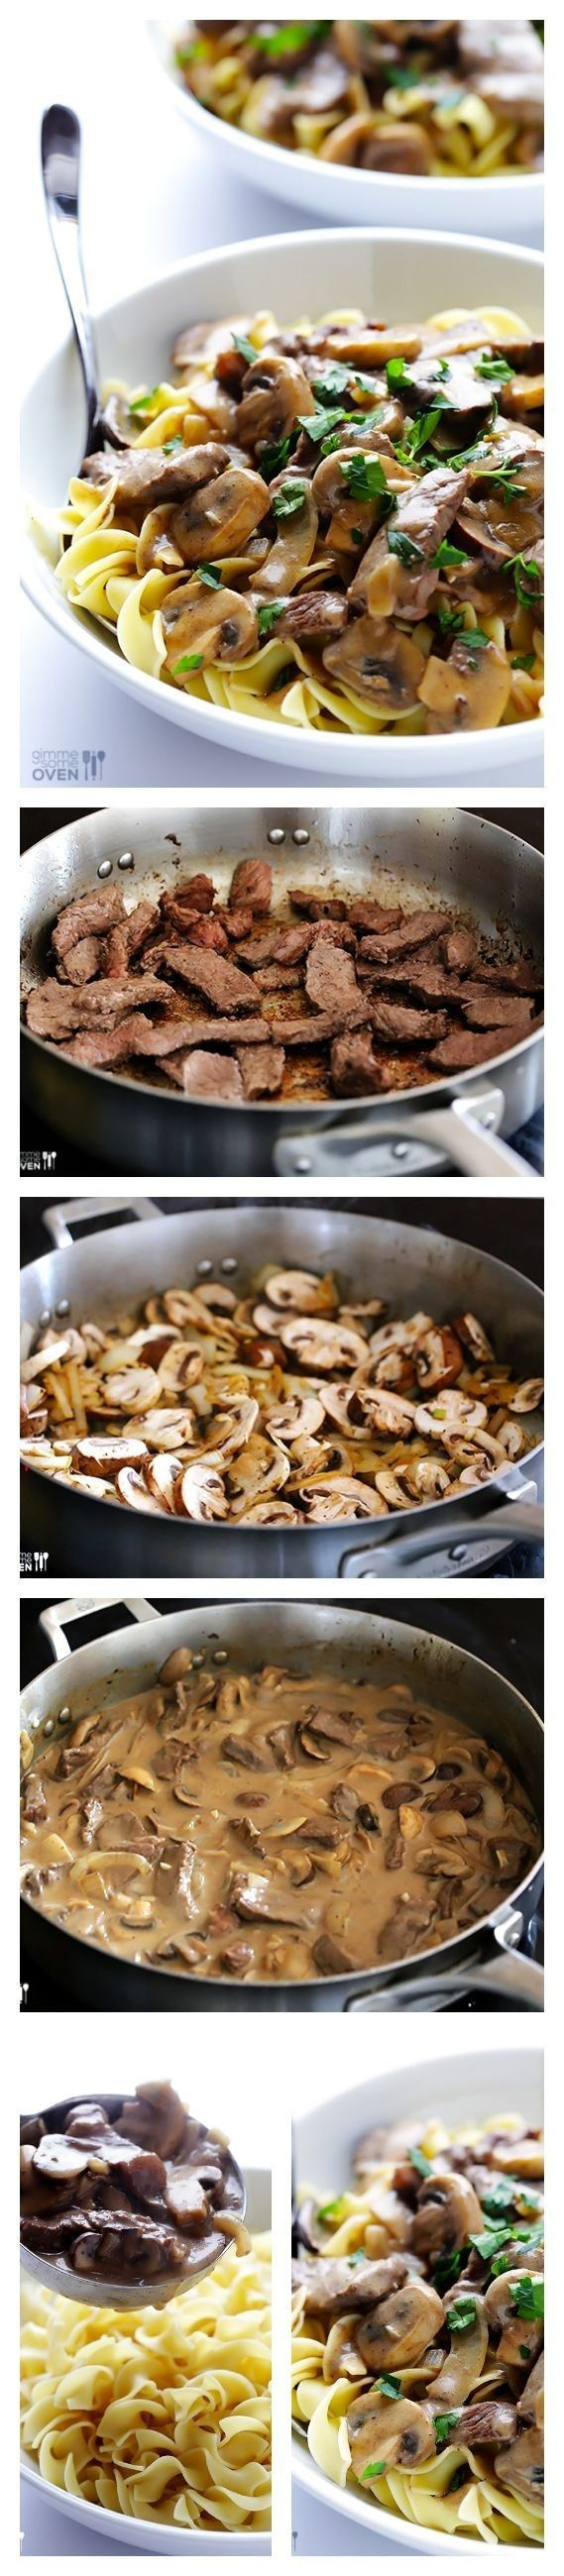 Easy Beef Stroganoff | 27 Quick And Easy Weeknight Pasta Dinners [ MyGourmetCafe.com ] #dinner #recipes #gourmet